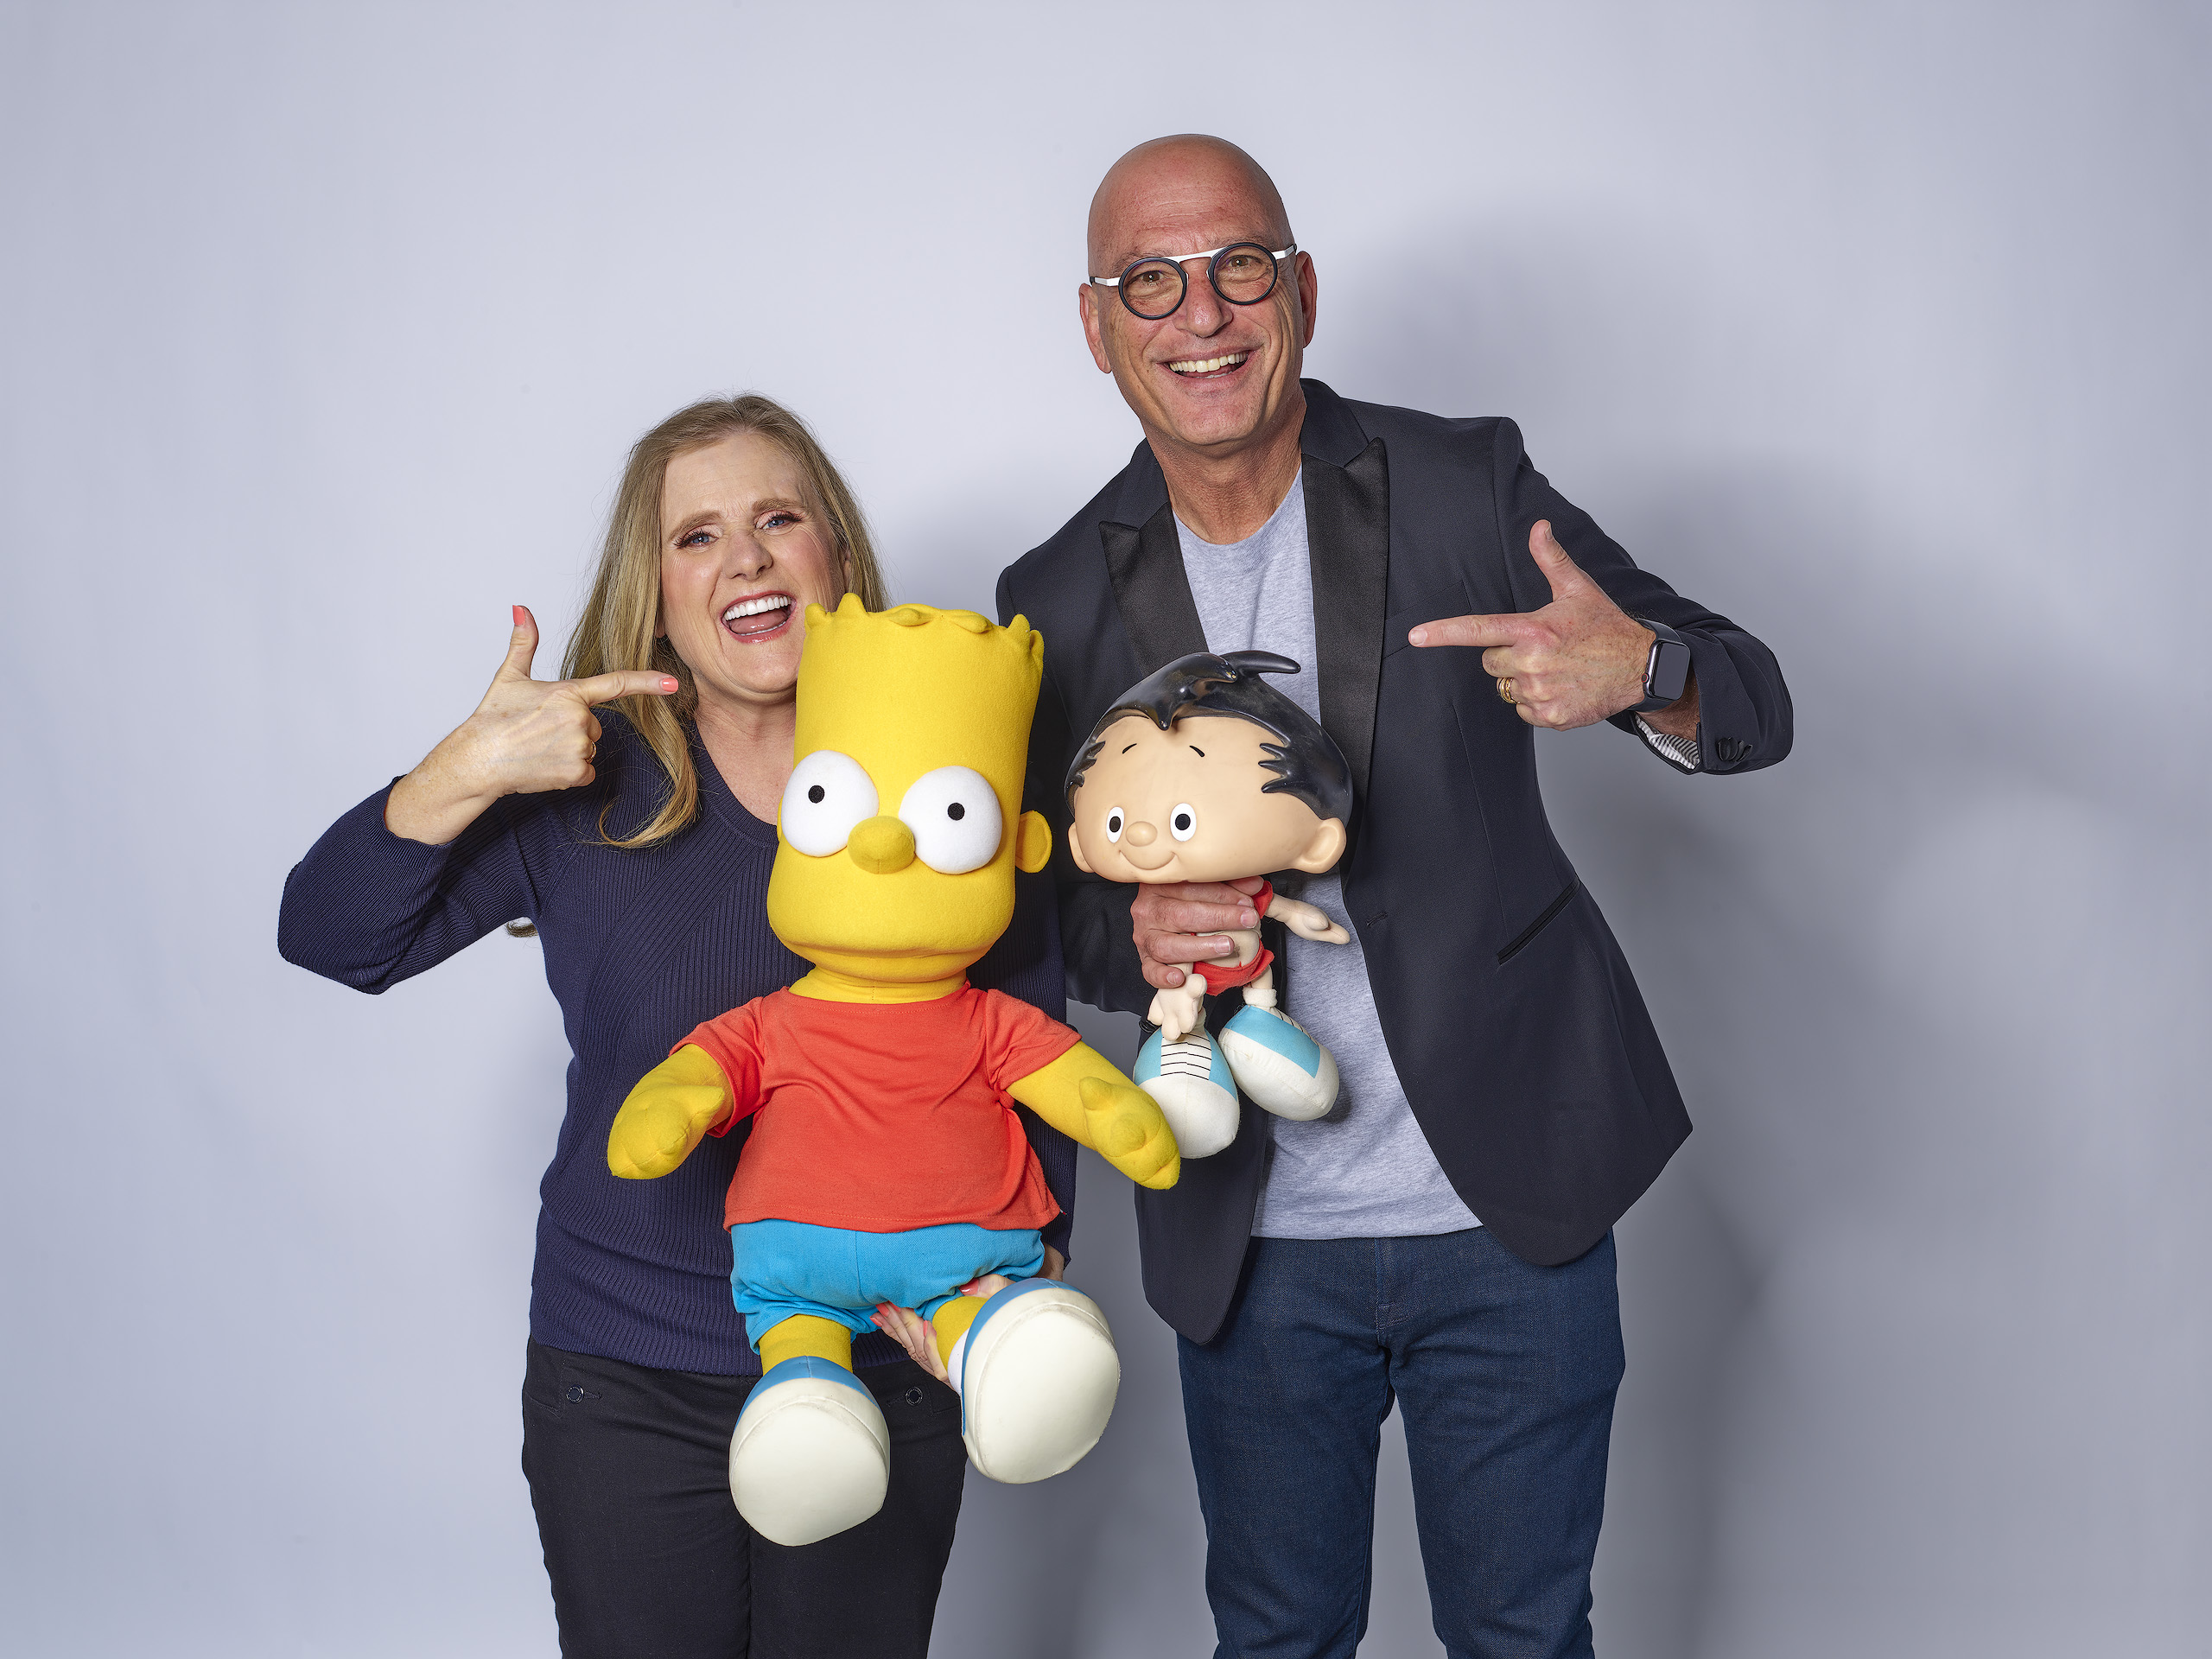 Howie Mandel (Bobby) and Nancy Cartwright (Bart Simpson)